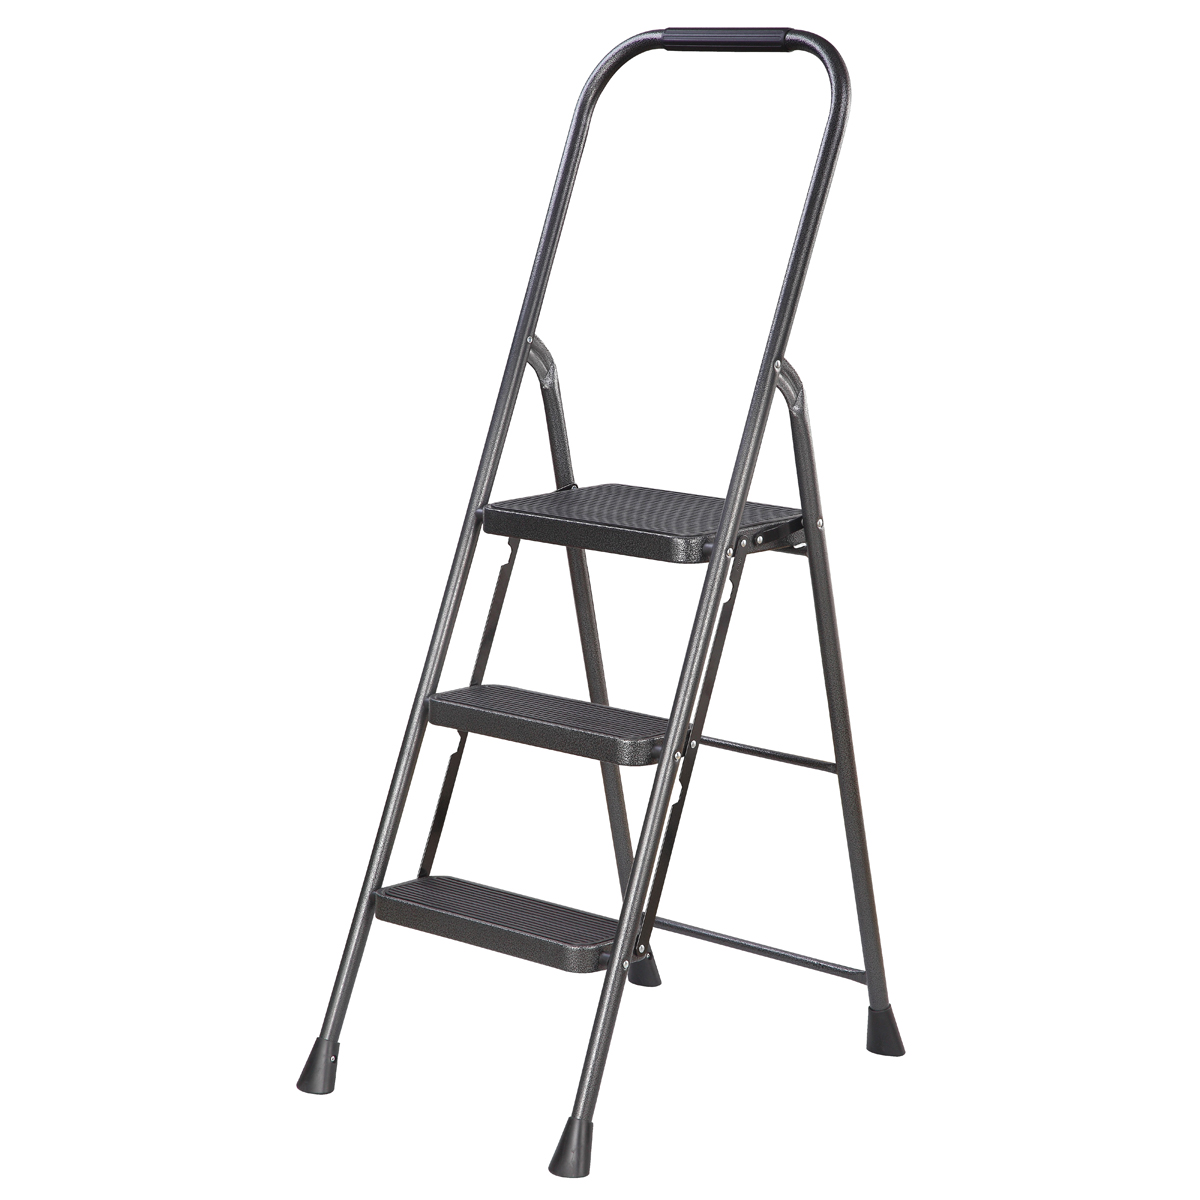 Picture of Simple Spaces HB3-2H Folding Step Stool, 50-3/4 in H, 3-Step, 225 lb, 5-1/8 in D Step, Steel, Black